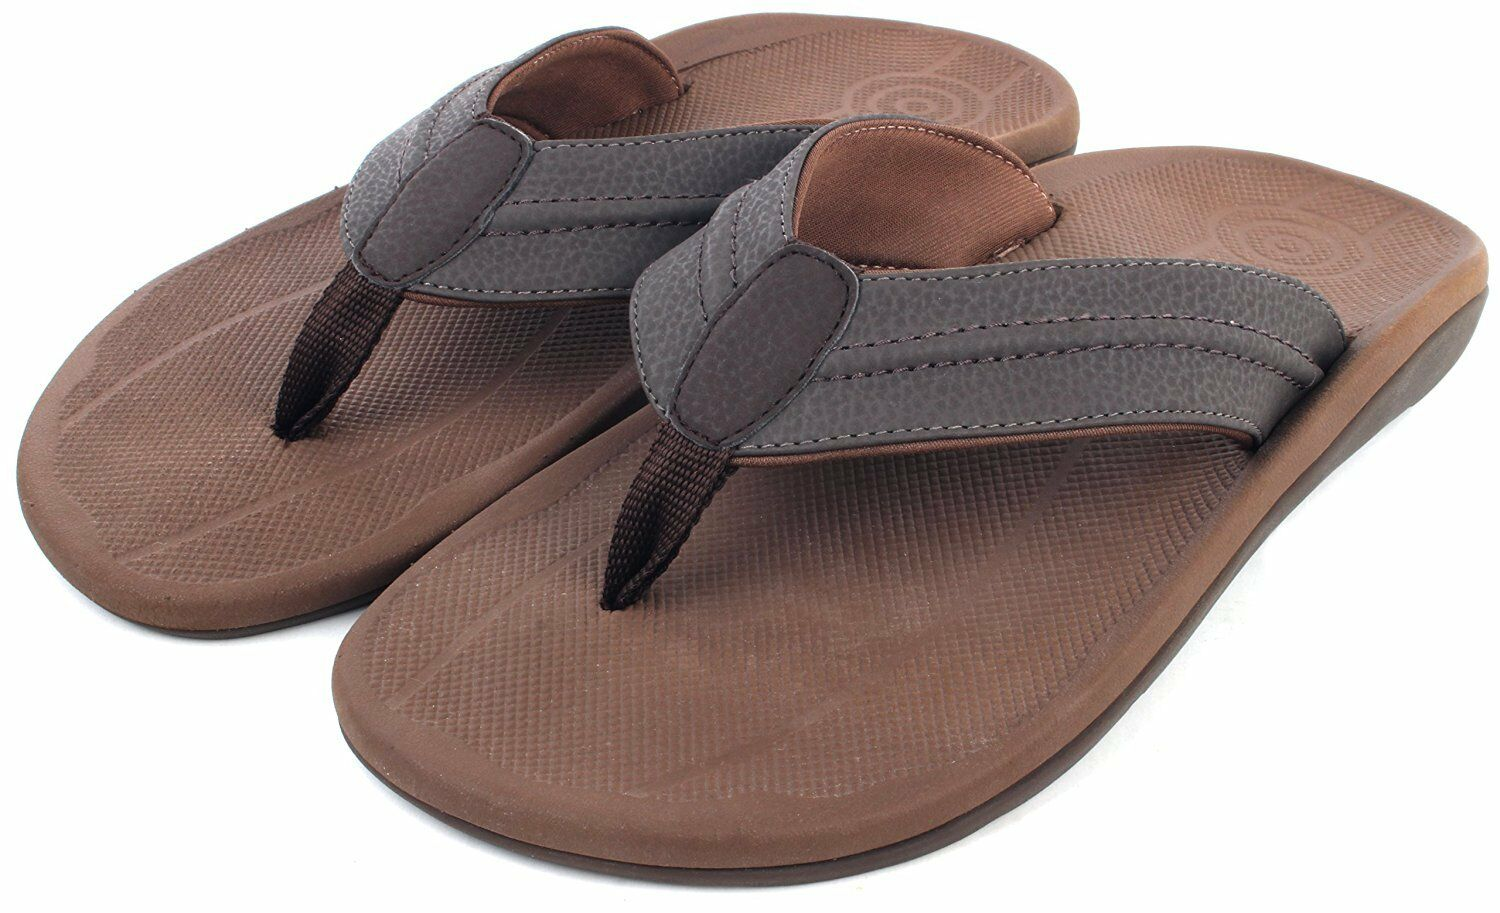 ebb269f3a22a Comforthotics® Comforthotics® Comforthotics® Men s Fred Brown Summer Flip  Flop Sandal Orthotic Arch Support f85afe